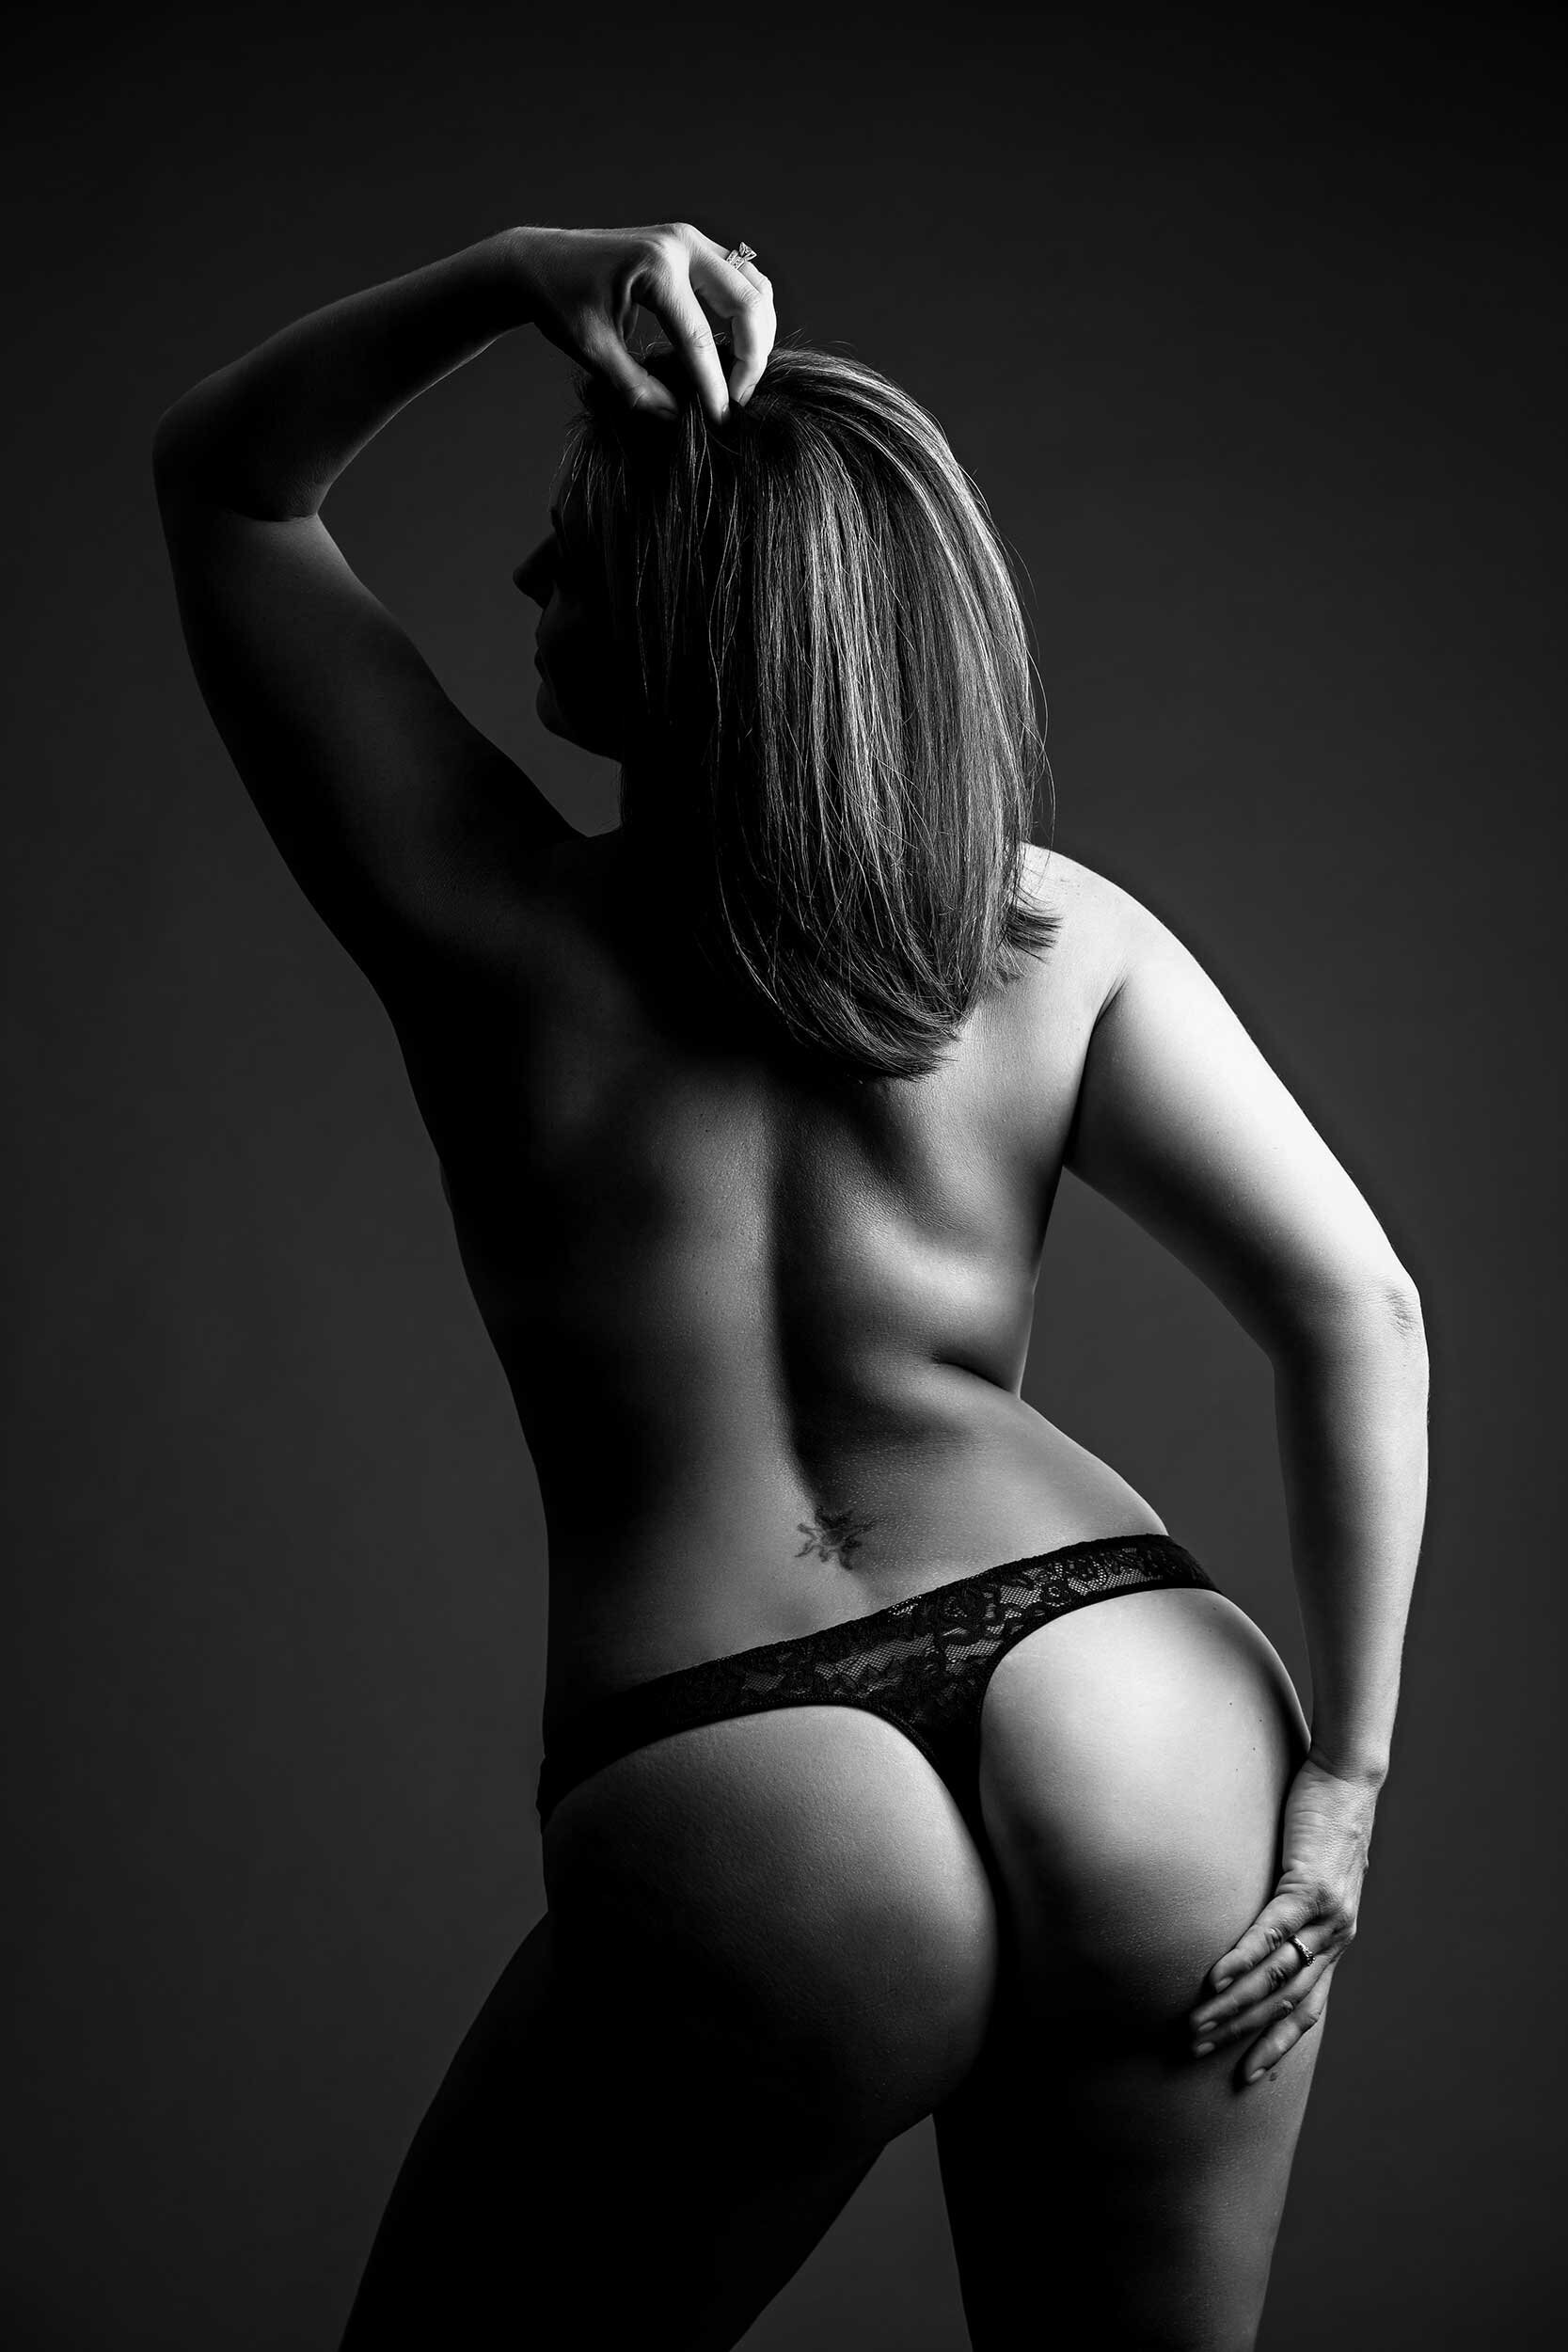 black lace thong on short brown hair woman